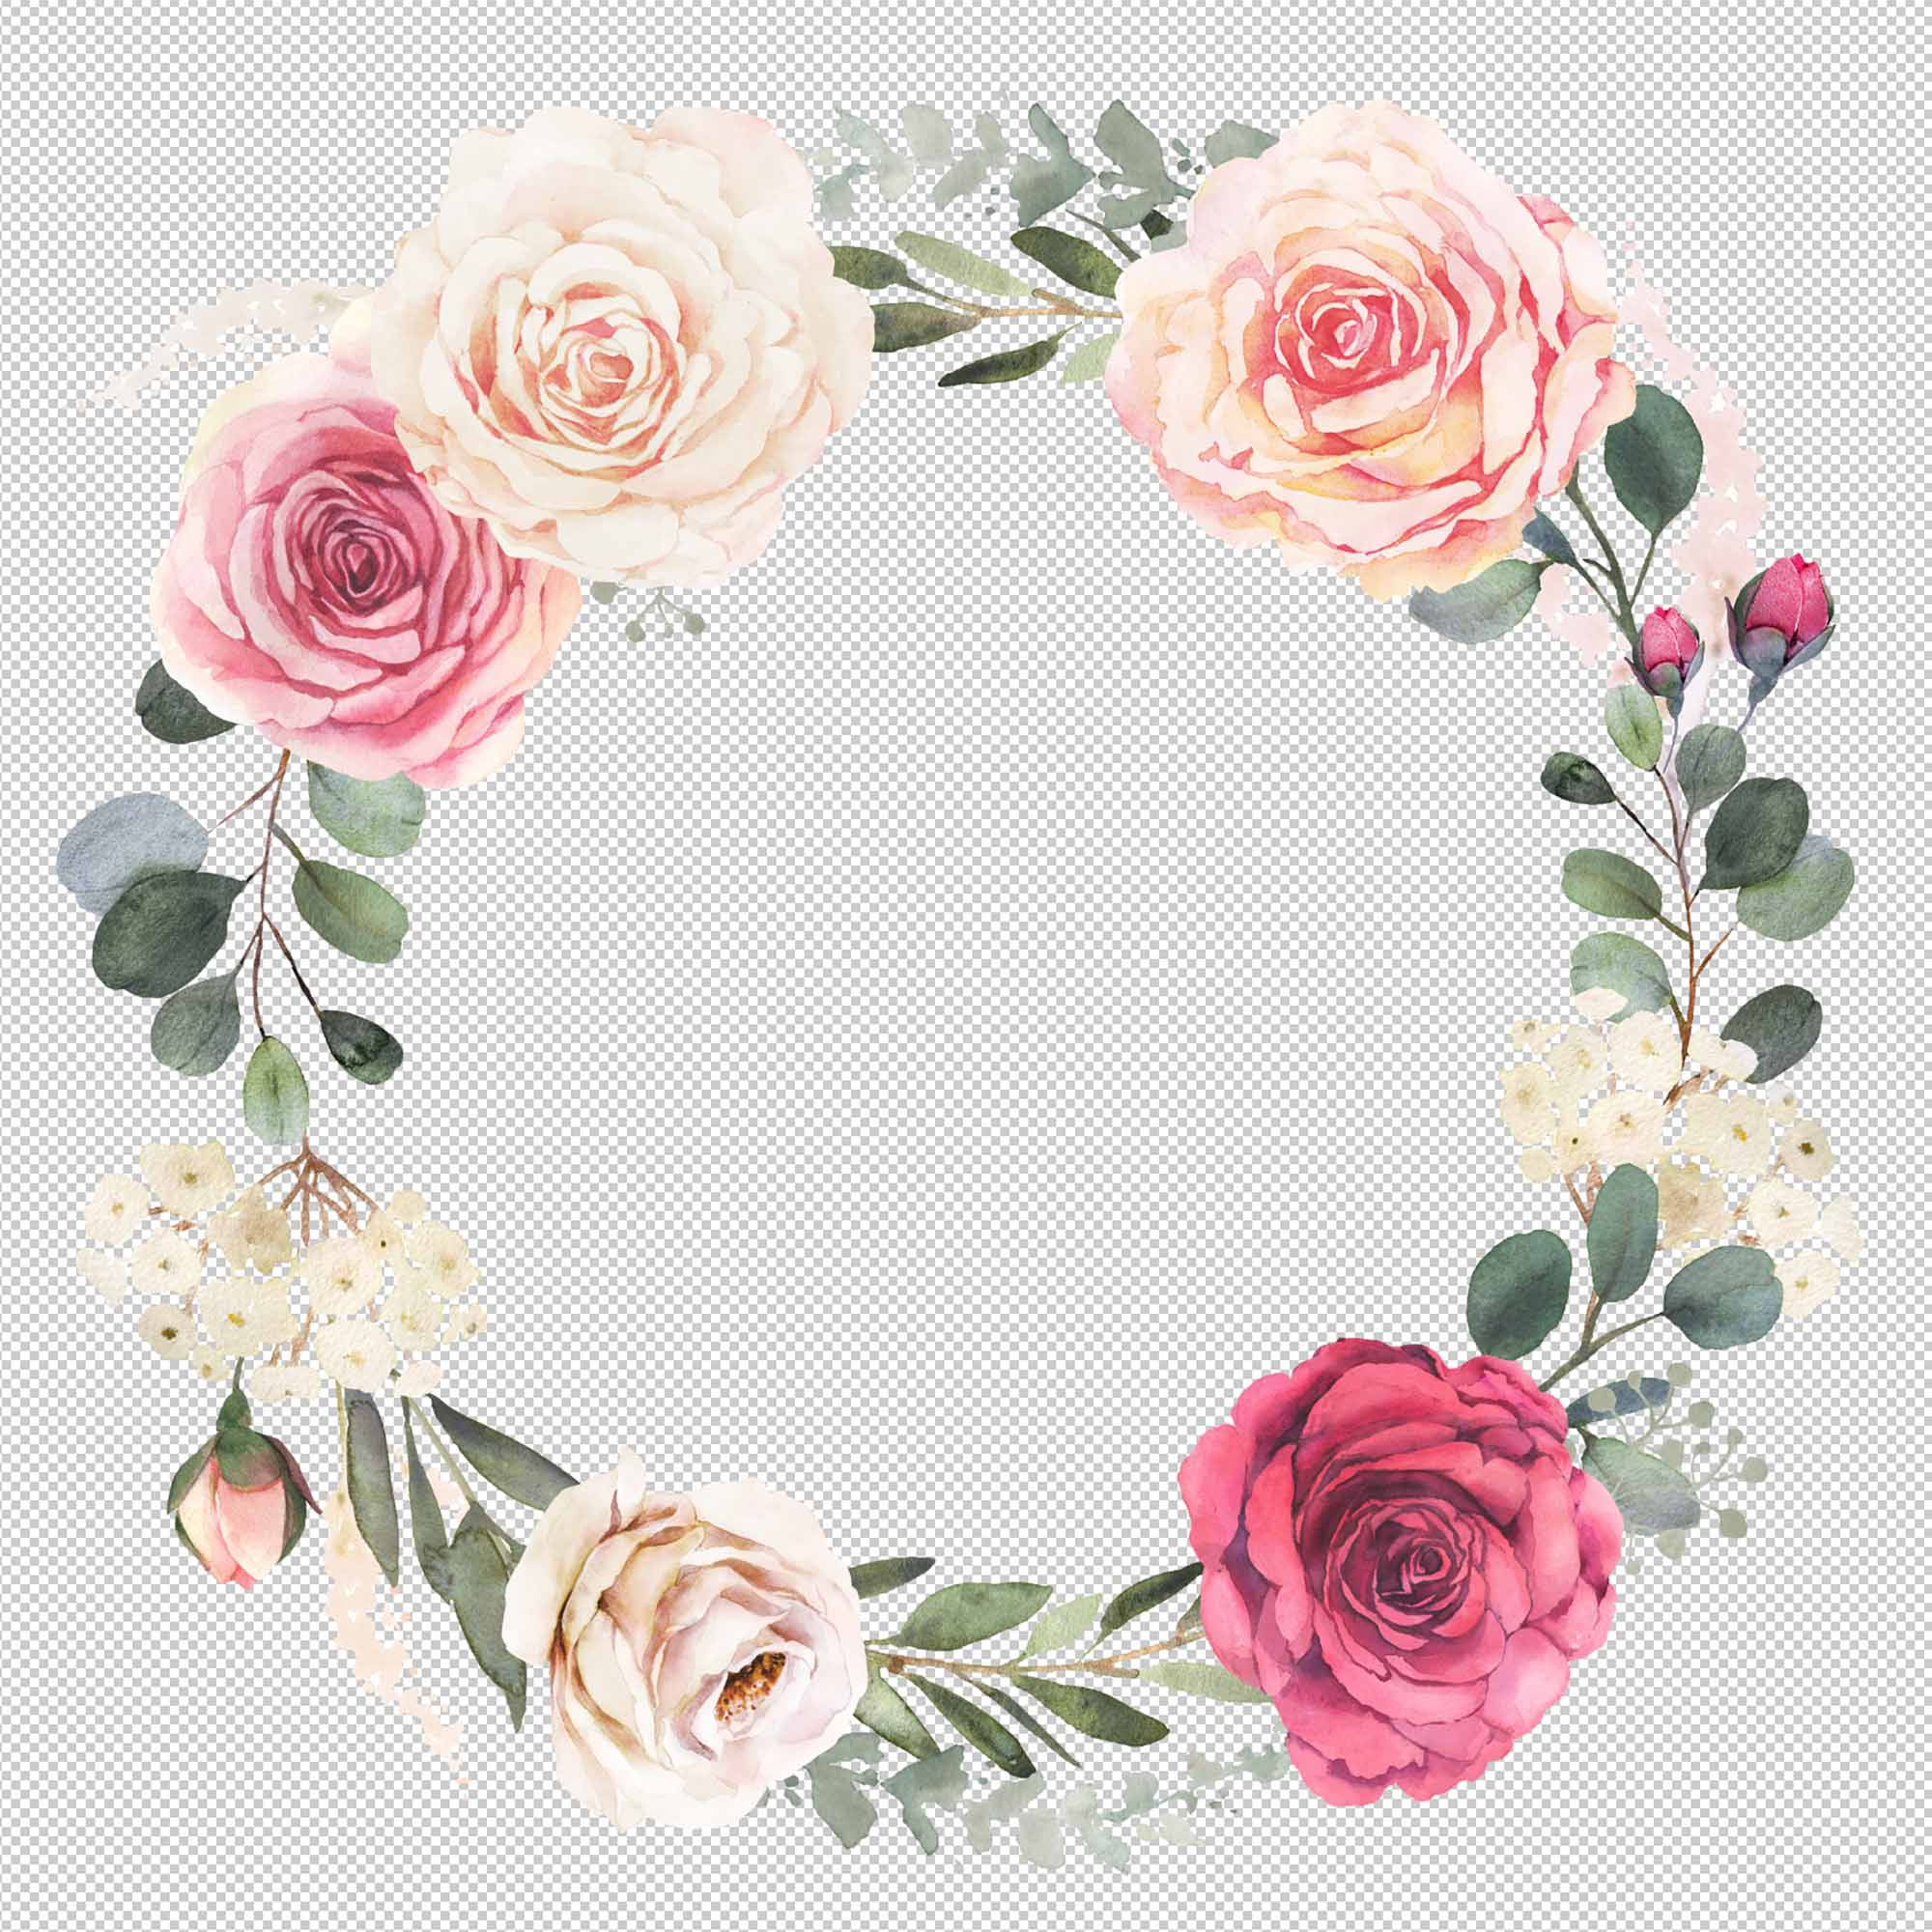 Watercolor Floral Wreath with Roses 2